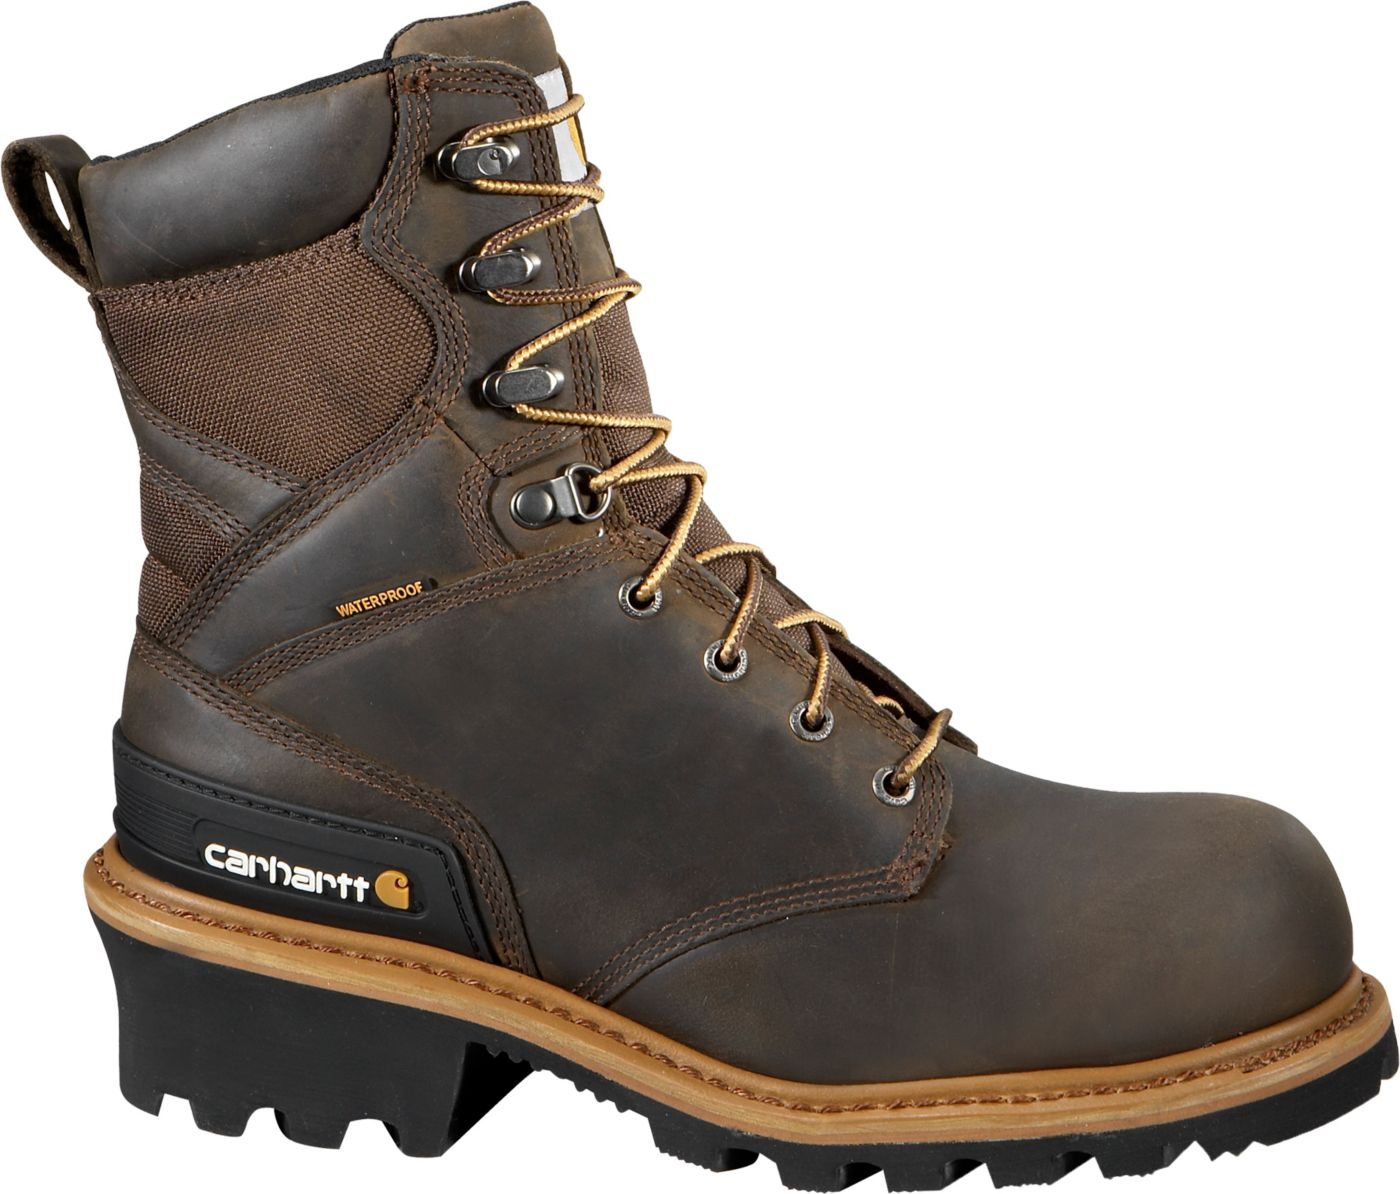 "Carhartt Men's Logger 8"" Waterproof Composite Toe Work Boots"